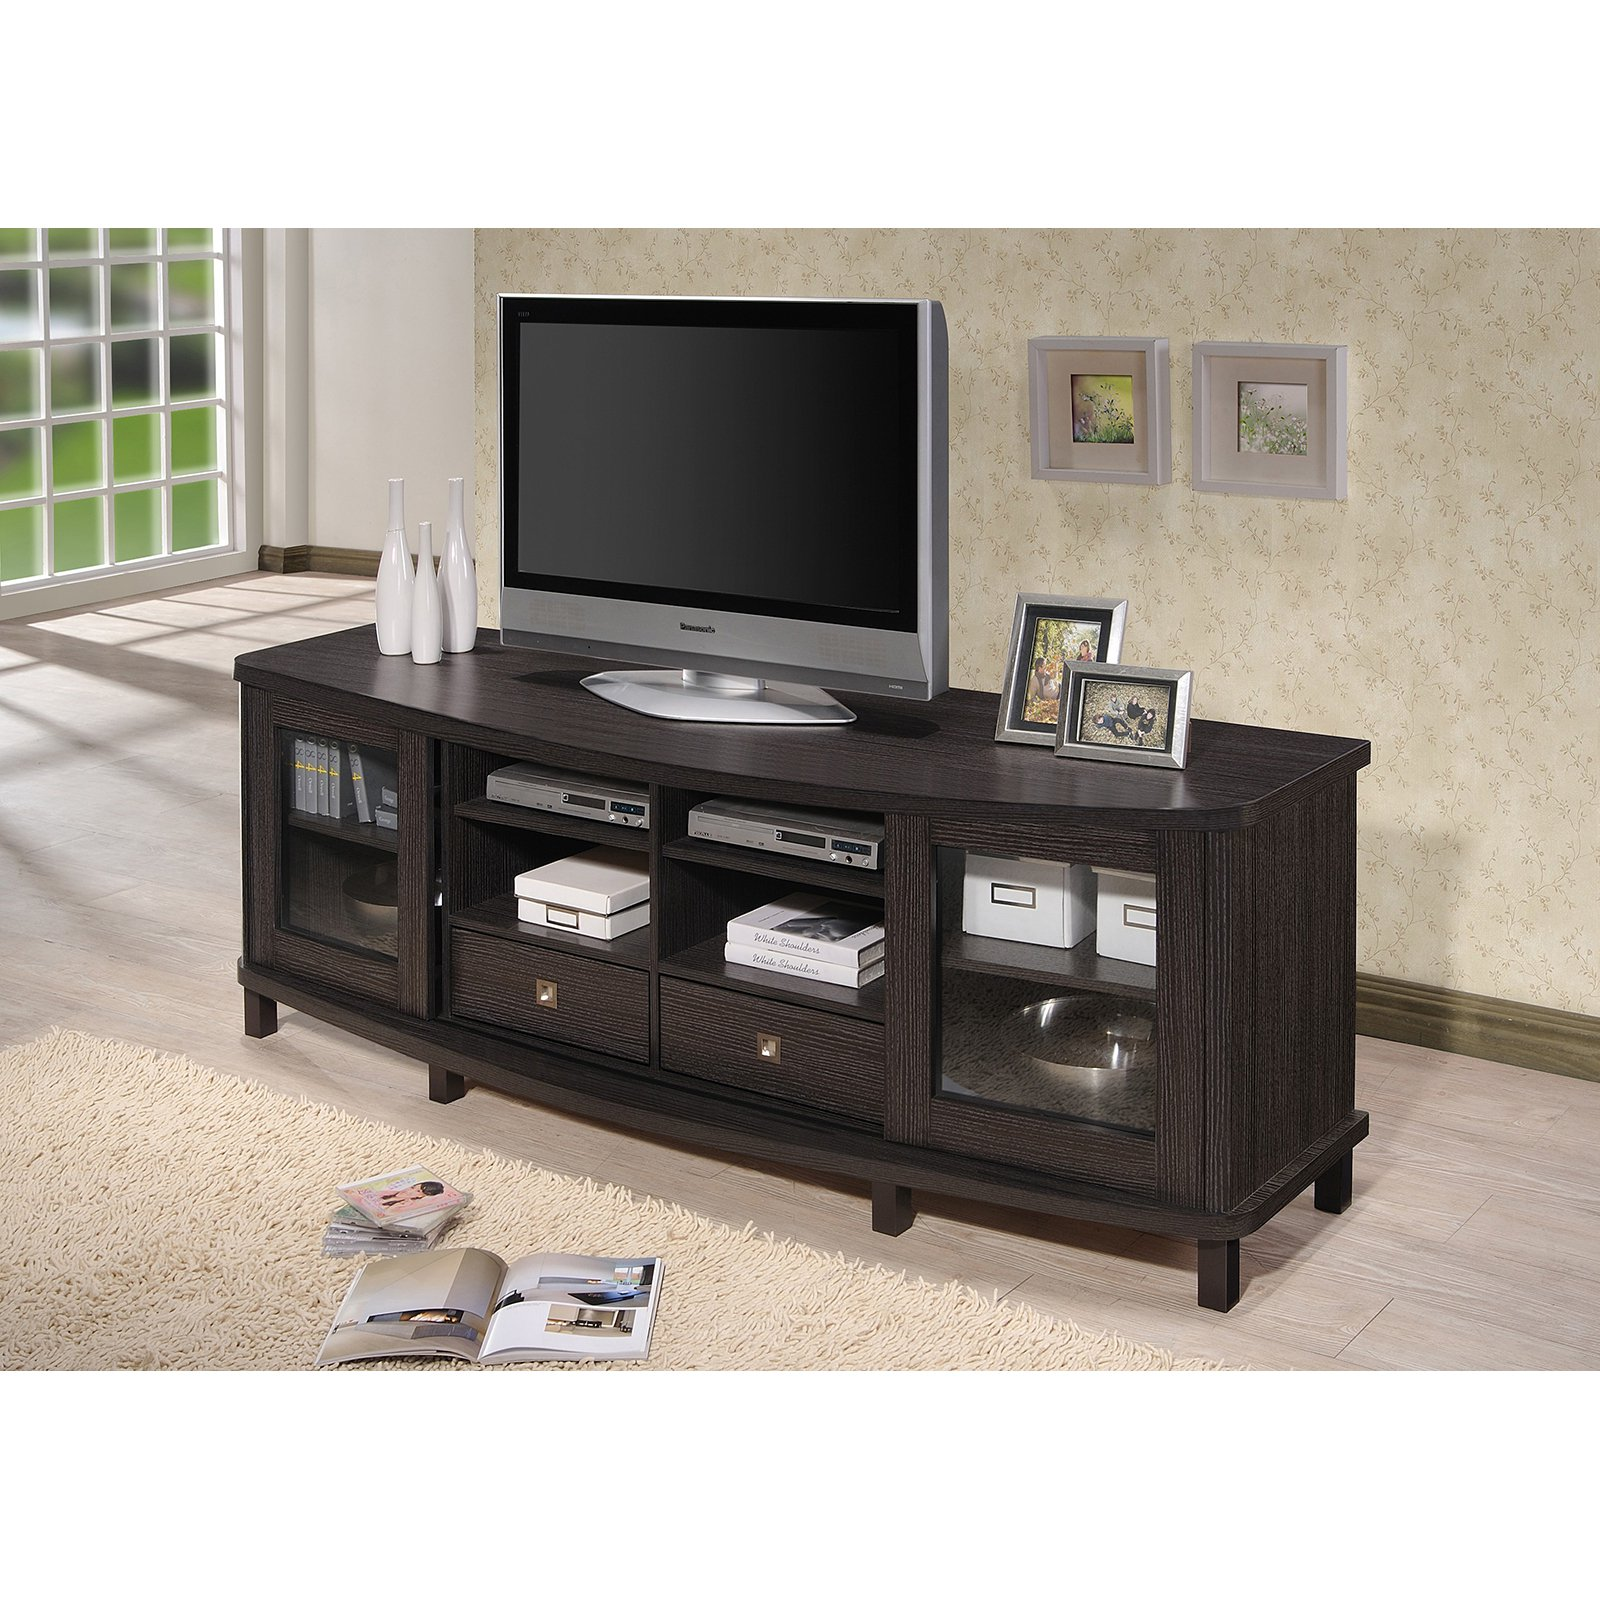 Baxton Studio Walda 70-Inch Dark Brown Wood TV Cabinet with 2 Sliding Doors and 2 Drawers